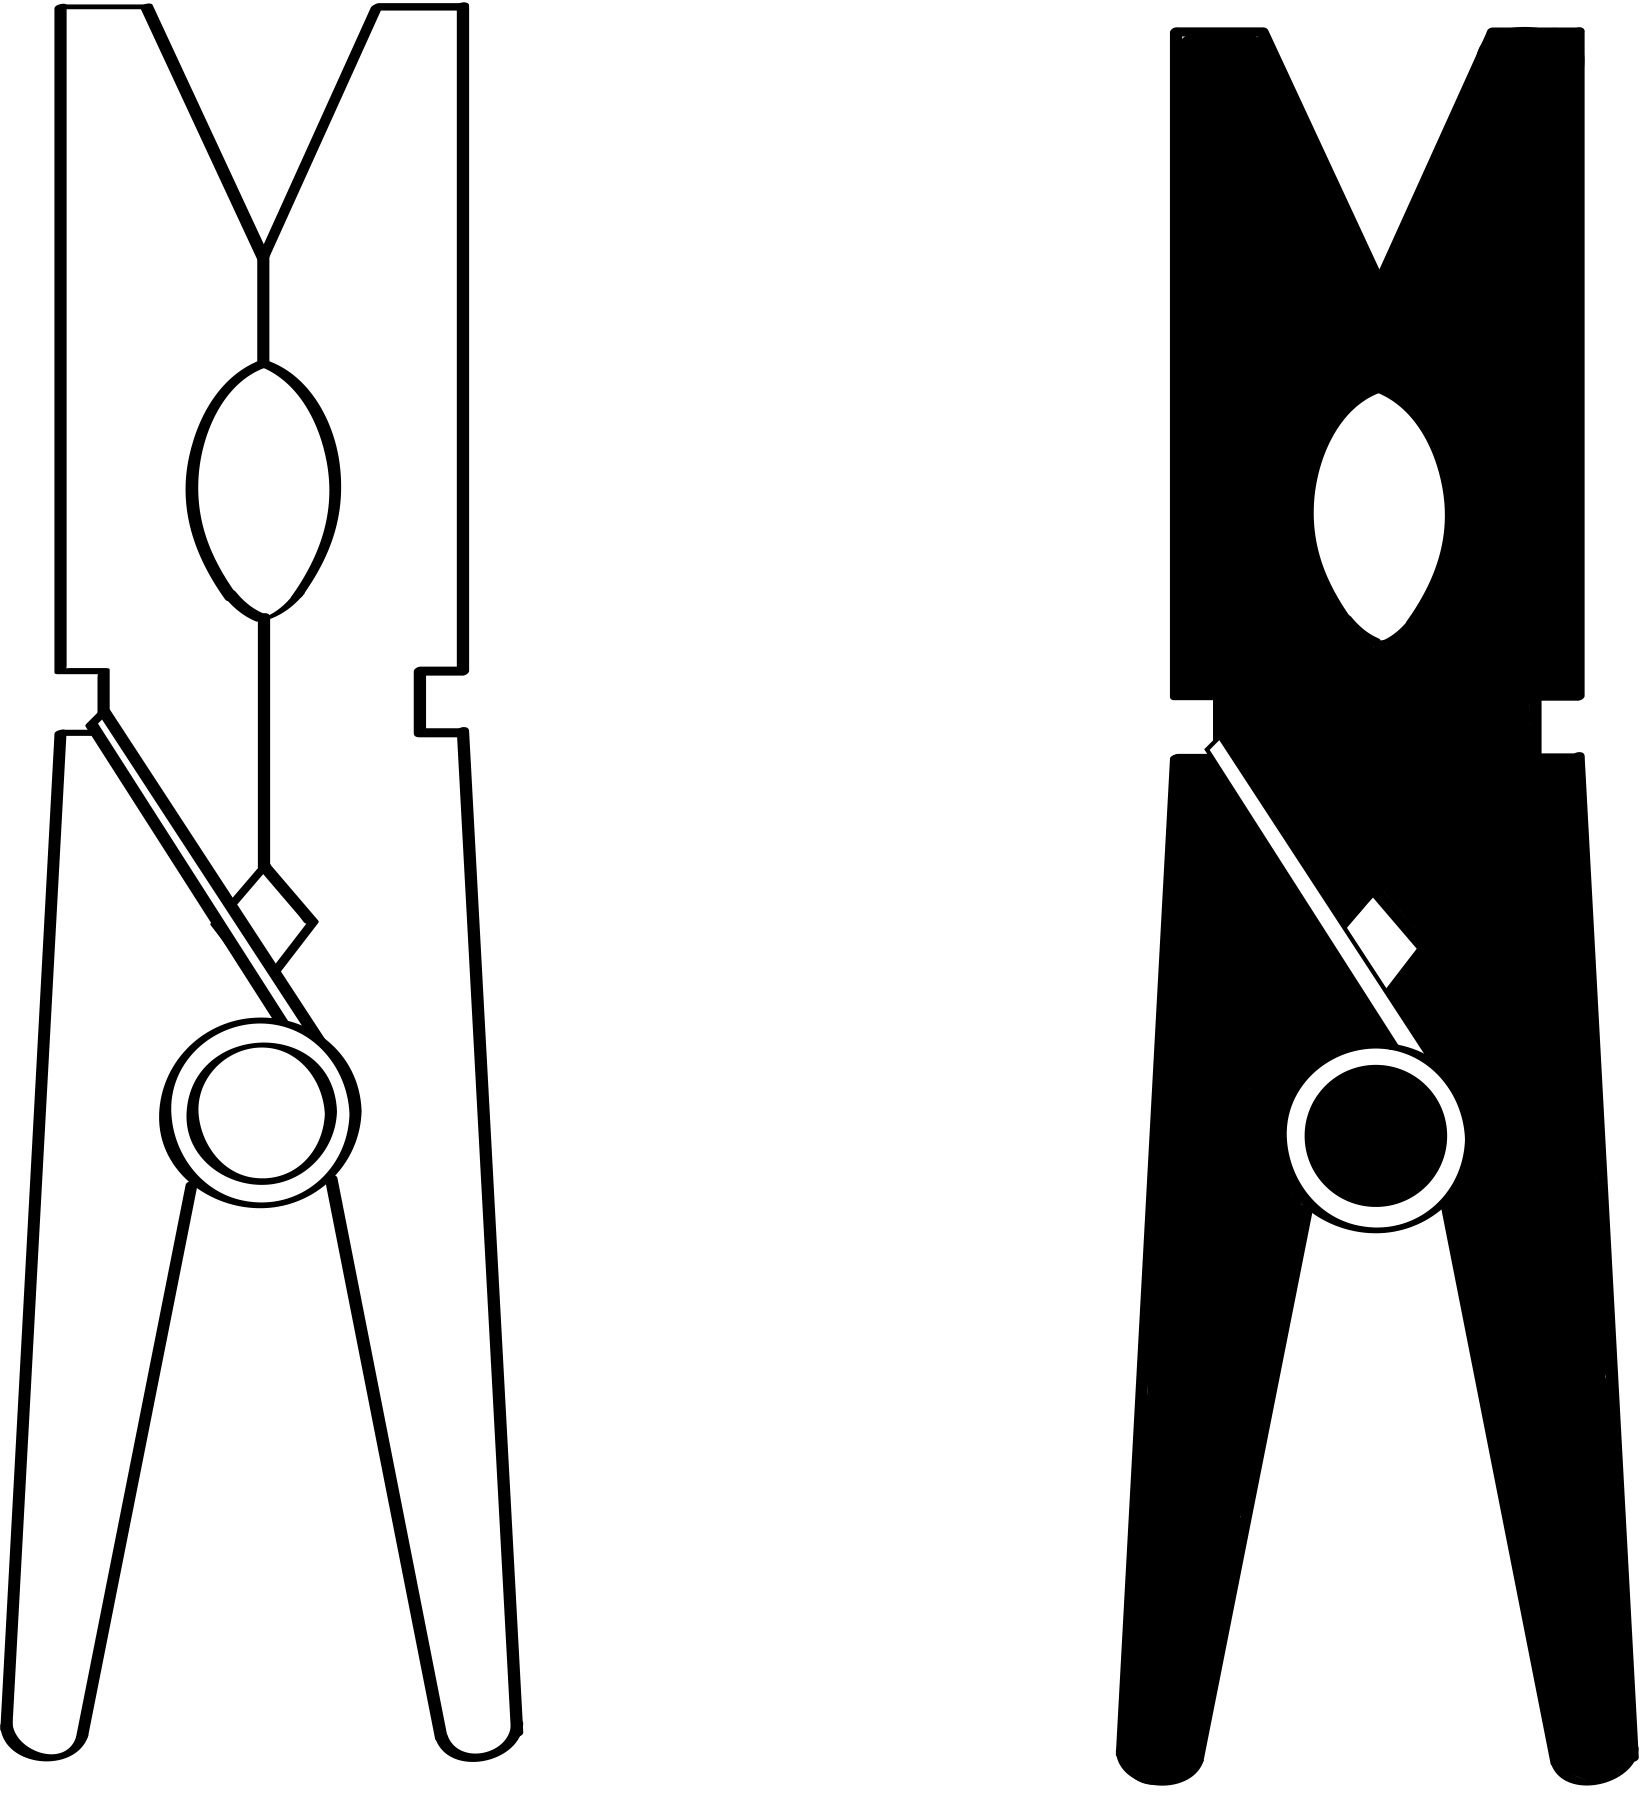 Pins clipart clothespin. Best of collection digital